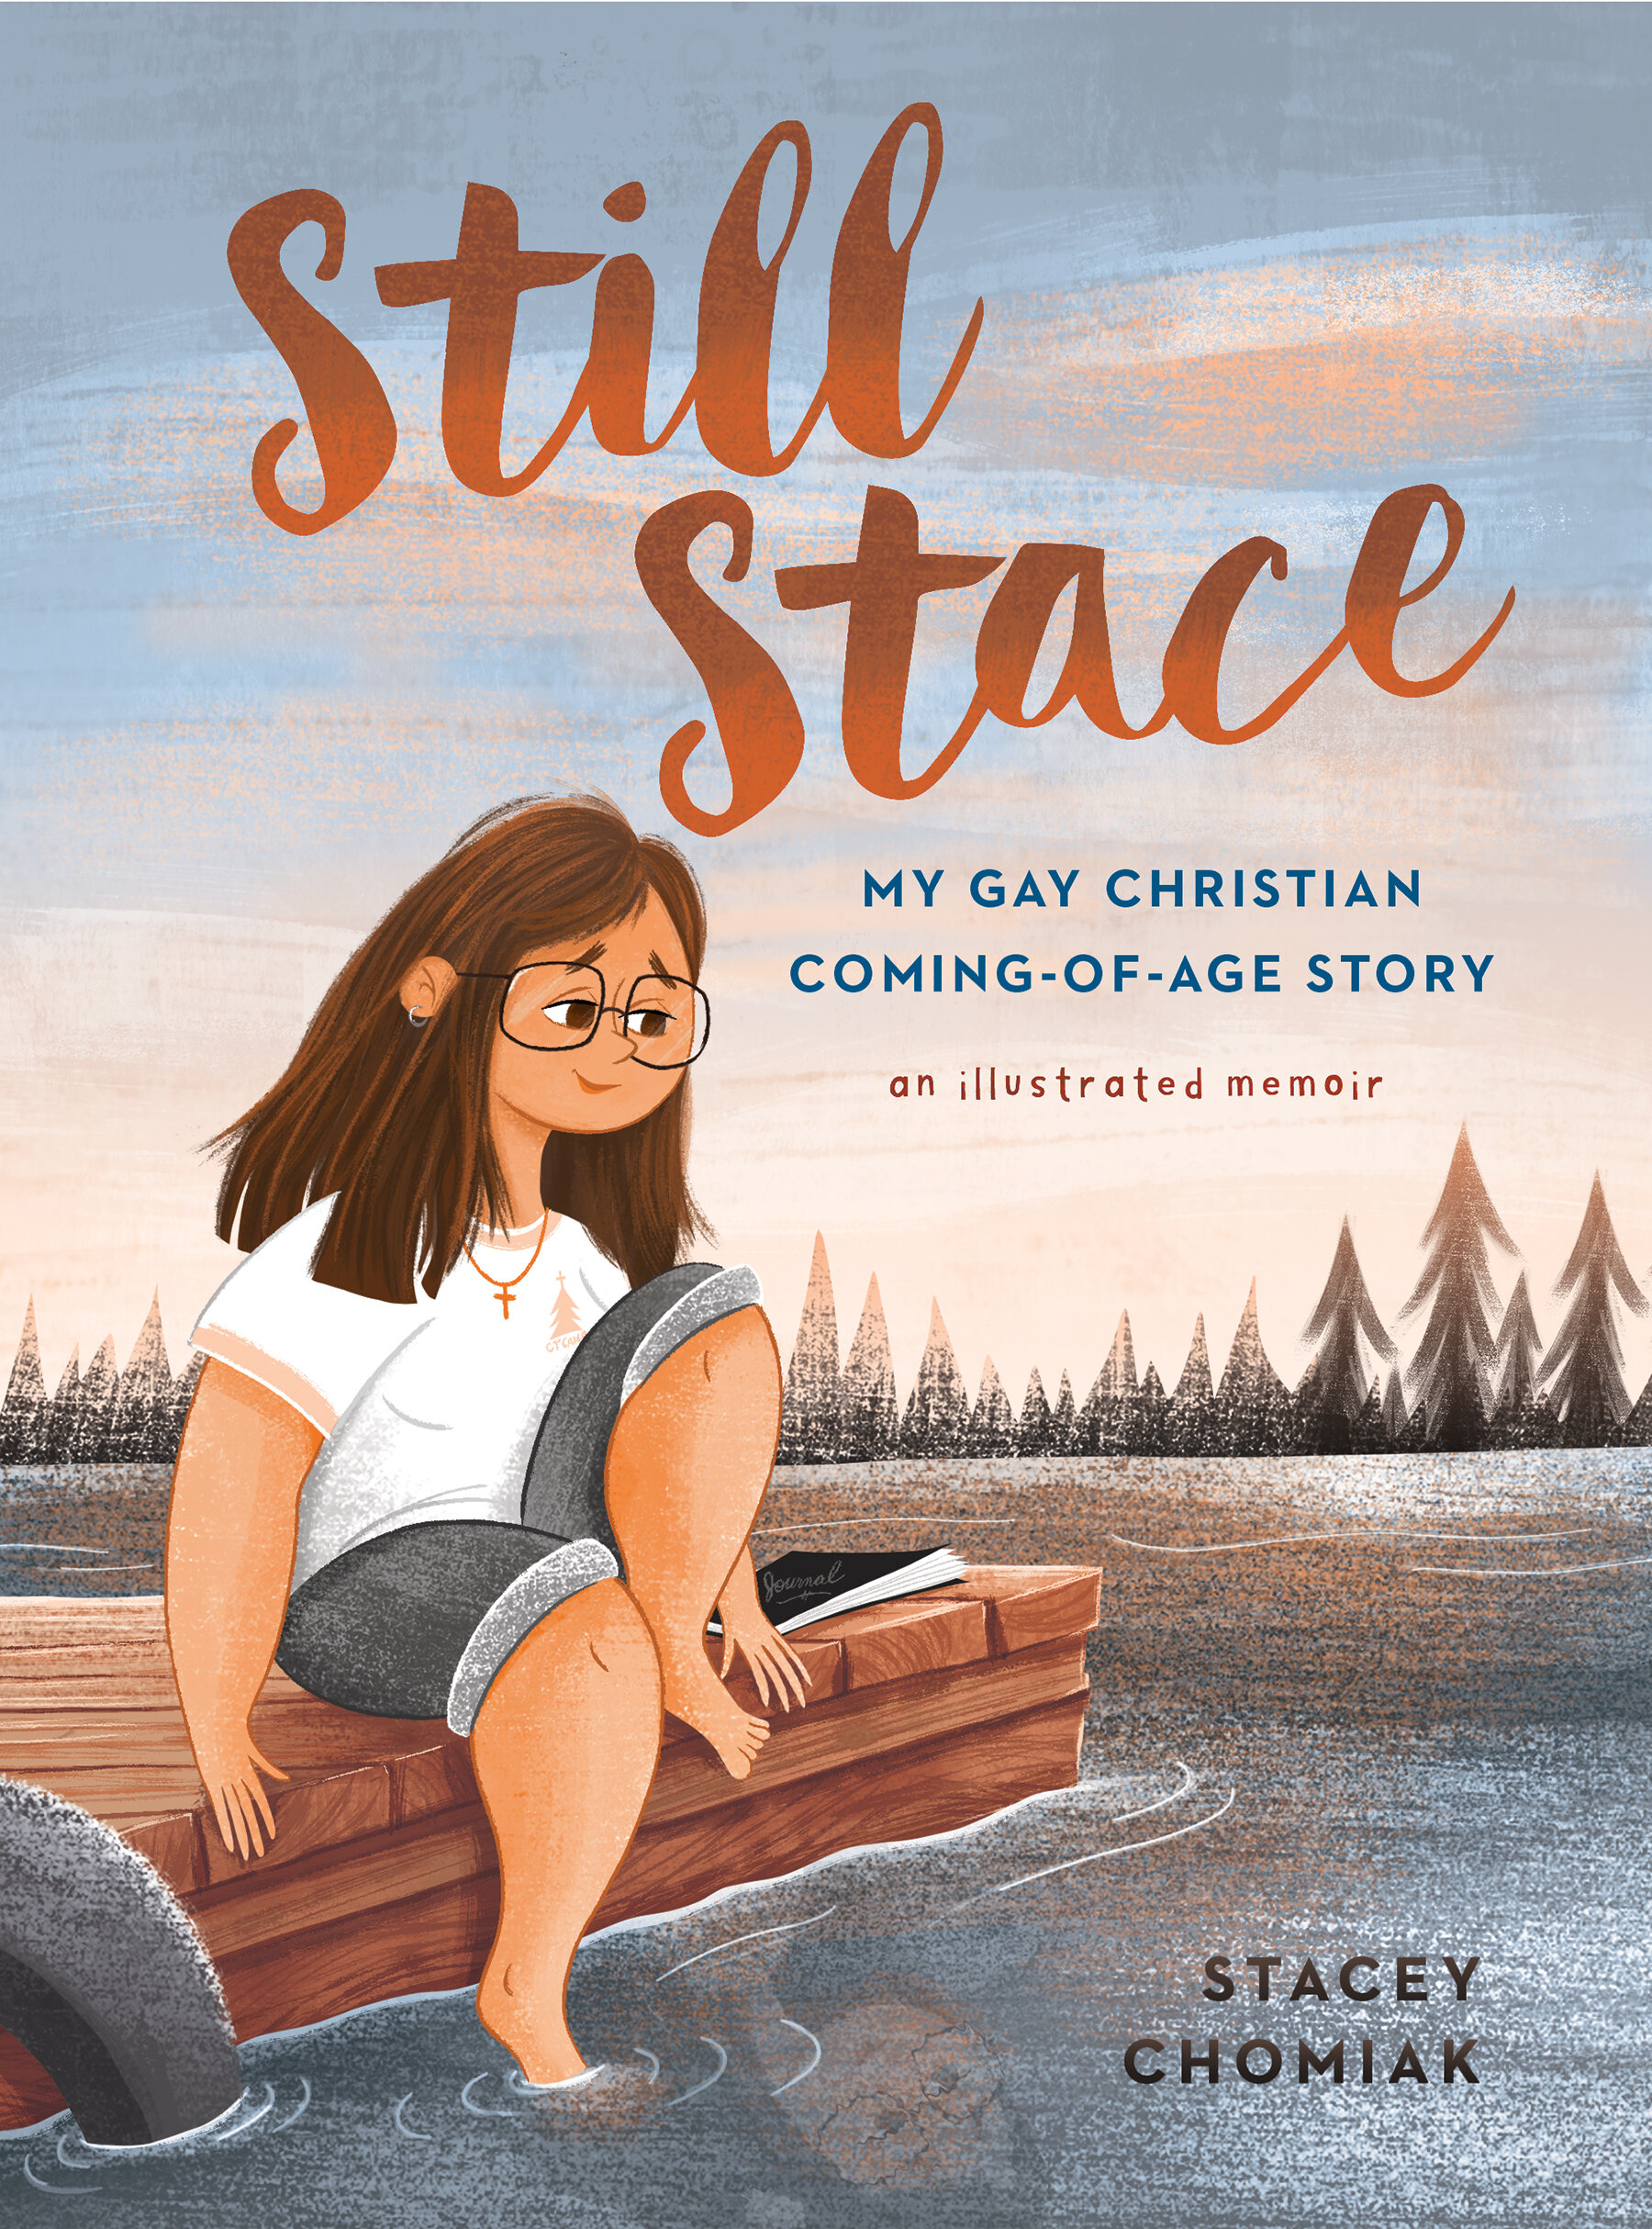 Still Stace: My Gay Christian Coming-of-Age Story | An Illustrated Memoir